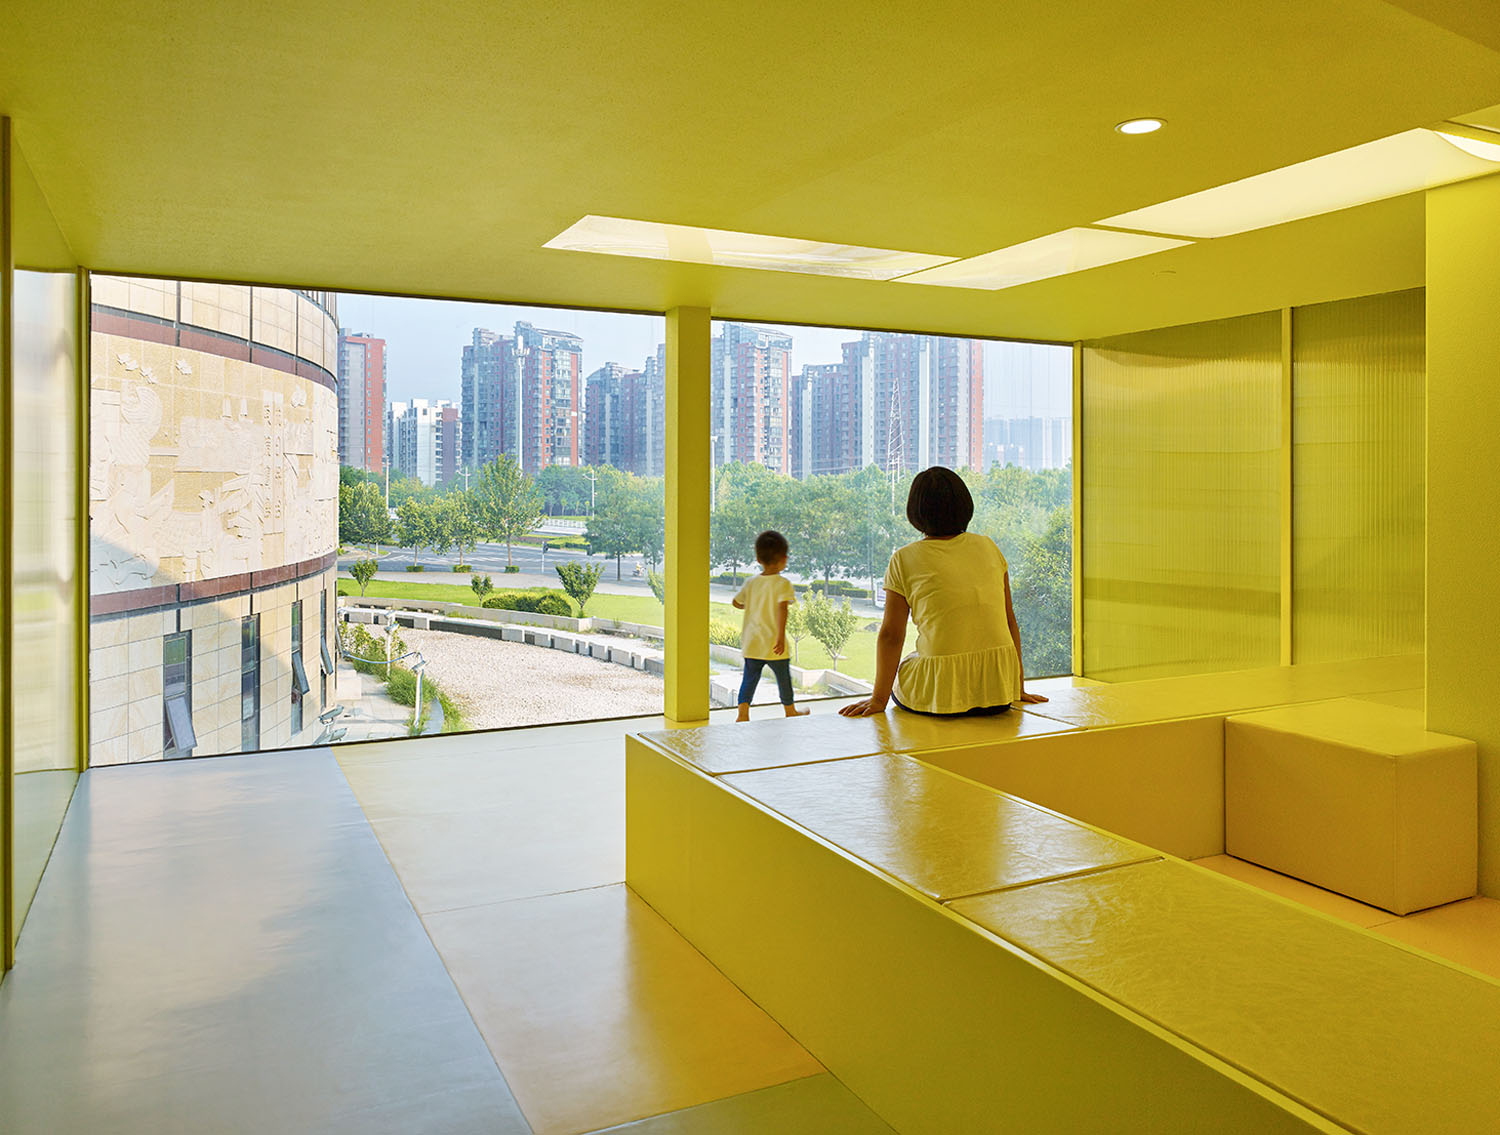 yellow tube with framed view YANG Chaoying